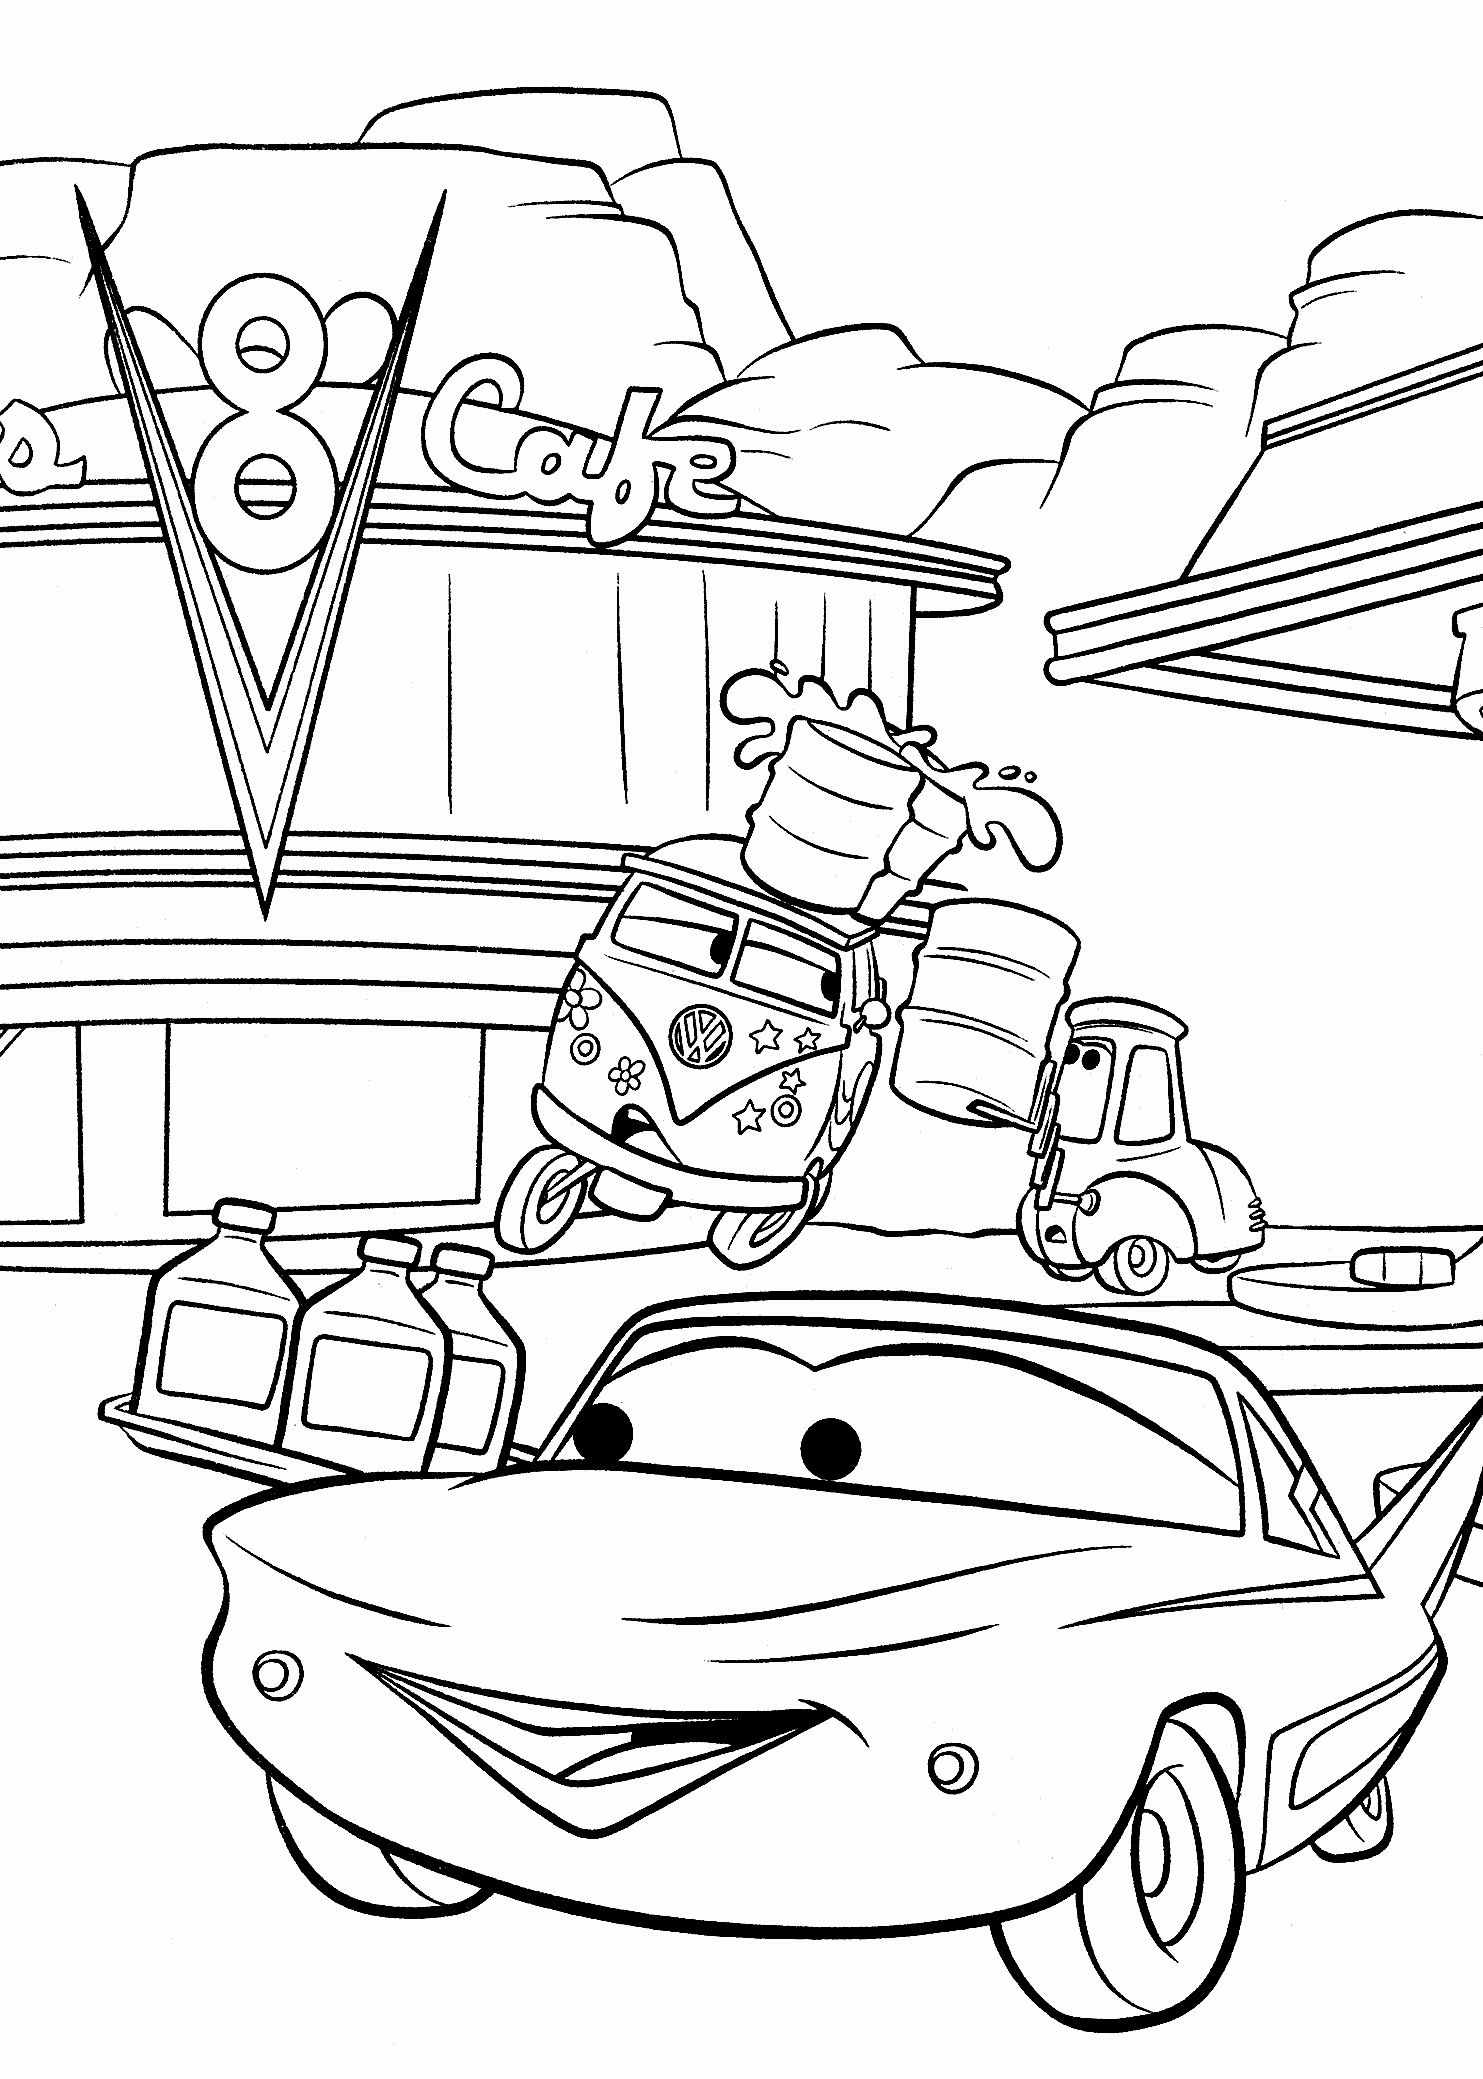 Cars 2 Coloring Pages Unique Coloring Pages All Cars 2 Coloring Home In 2020 Race Car Coloring Pages Disney Coloring Pages Cars Coloring Pages